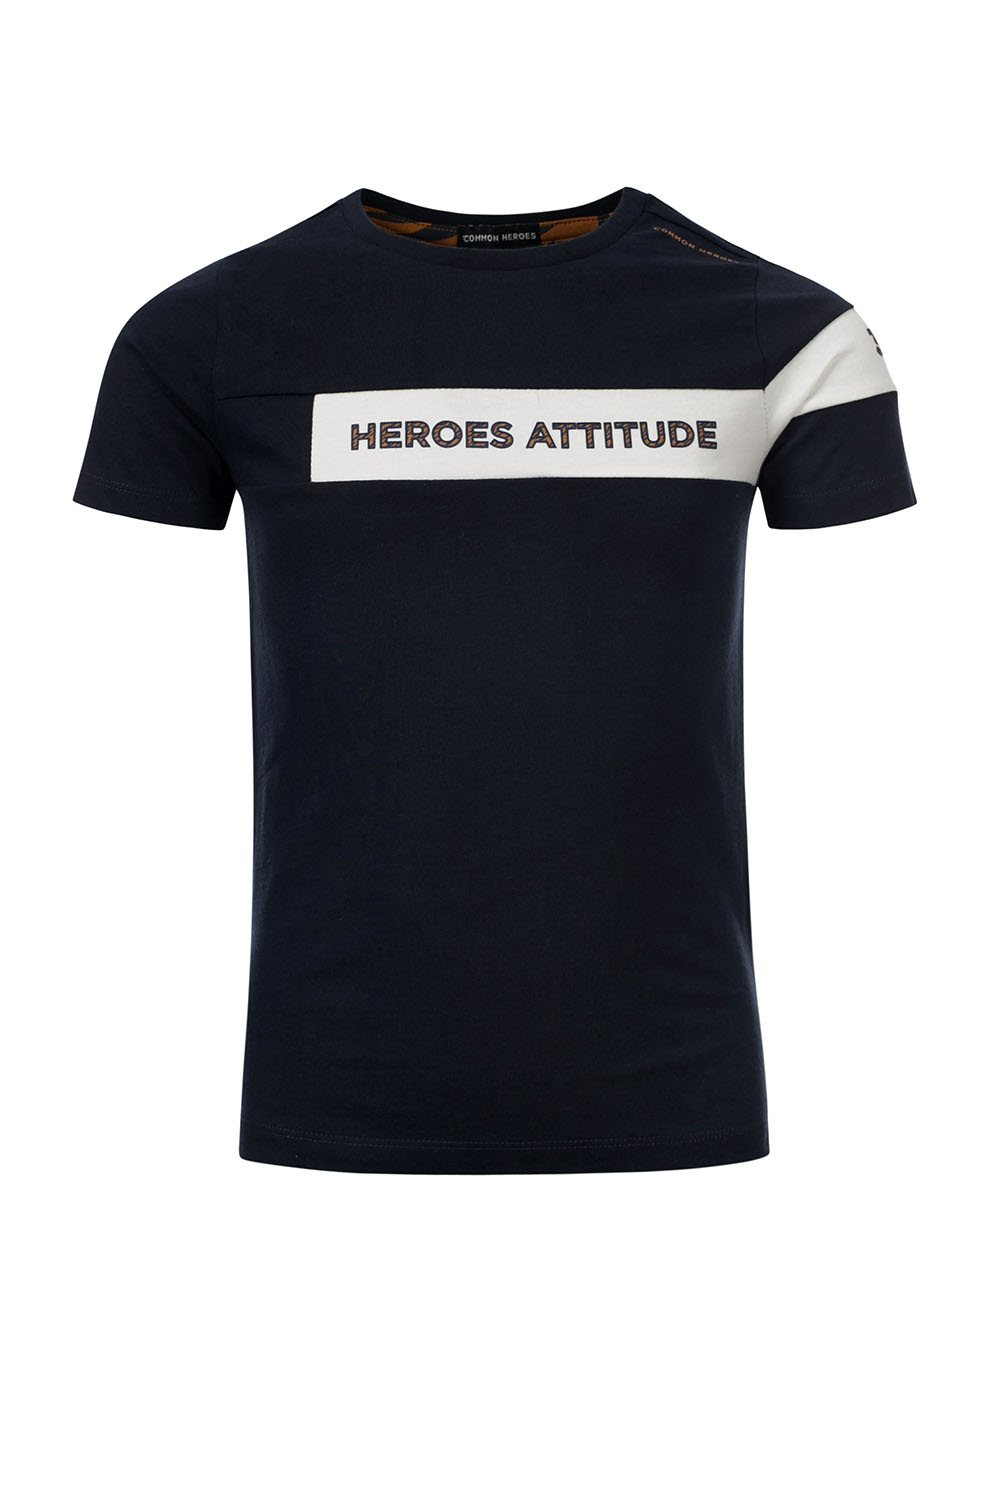 Common Heroes t-shirt